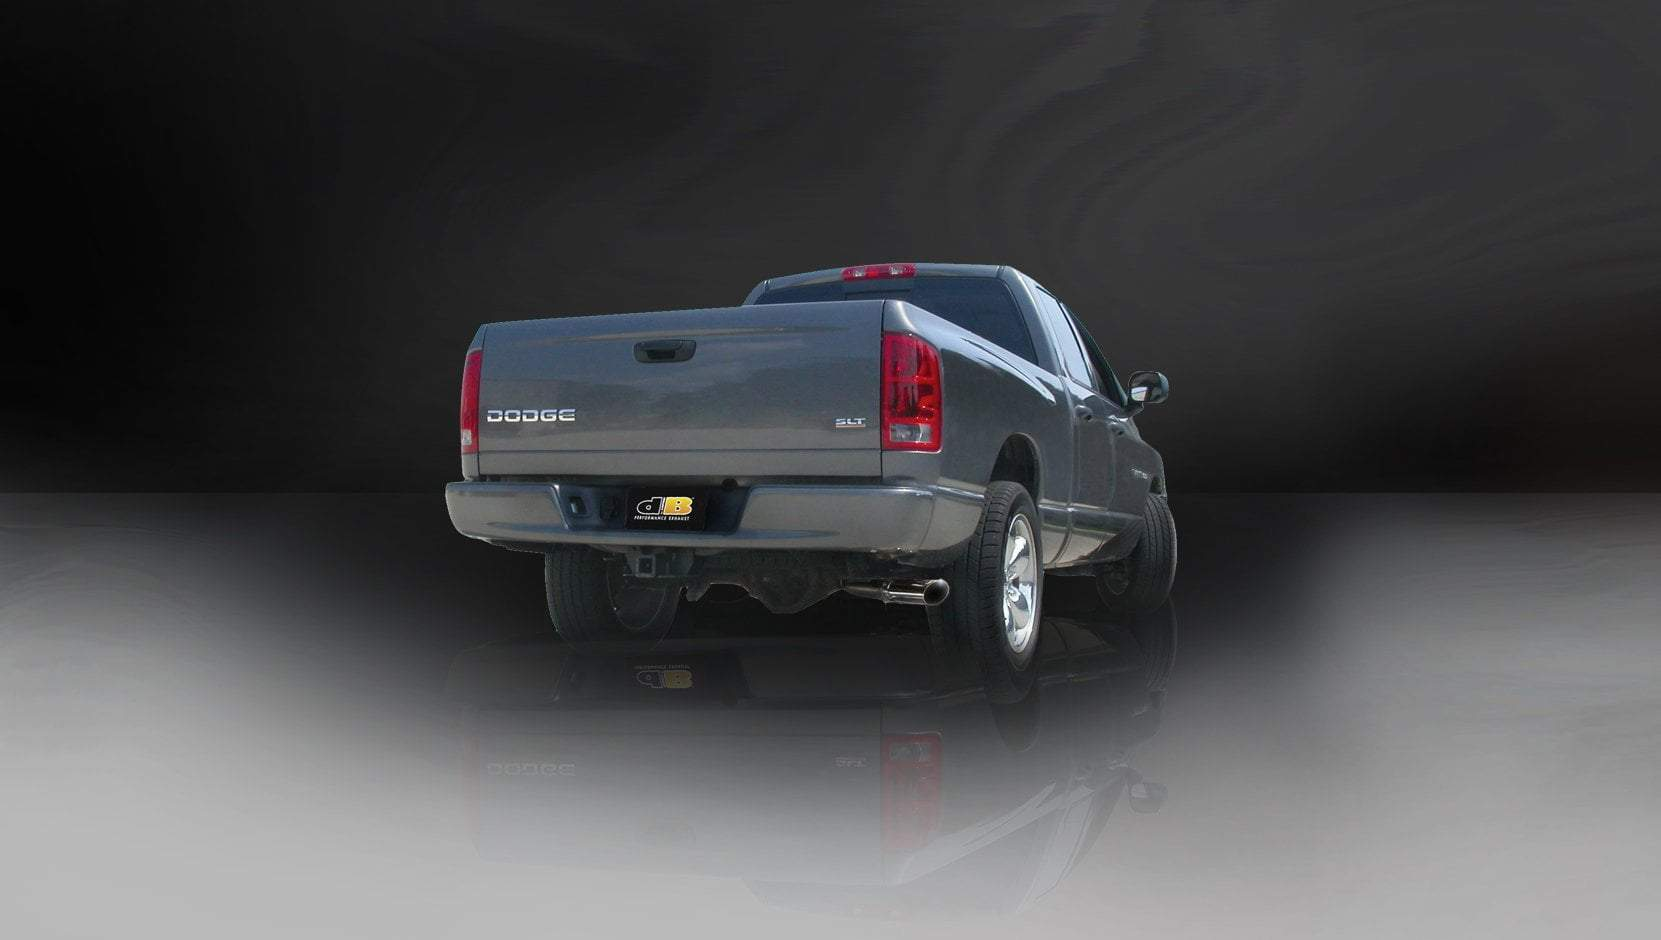 "dB Cat-Back Exhaust Polished / Sport / Single Side - Single 4in Slash Cut 2004-2005 Dodge RAM 1500 4.7L, 5.7L V8, 3.0"" Single Side Exit Catback Exhaust System with 4.0"" Tip (24403) Sport Sound Level"